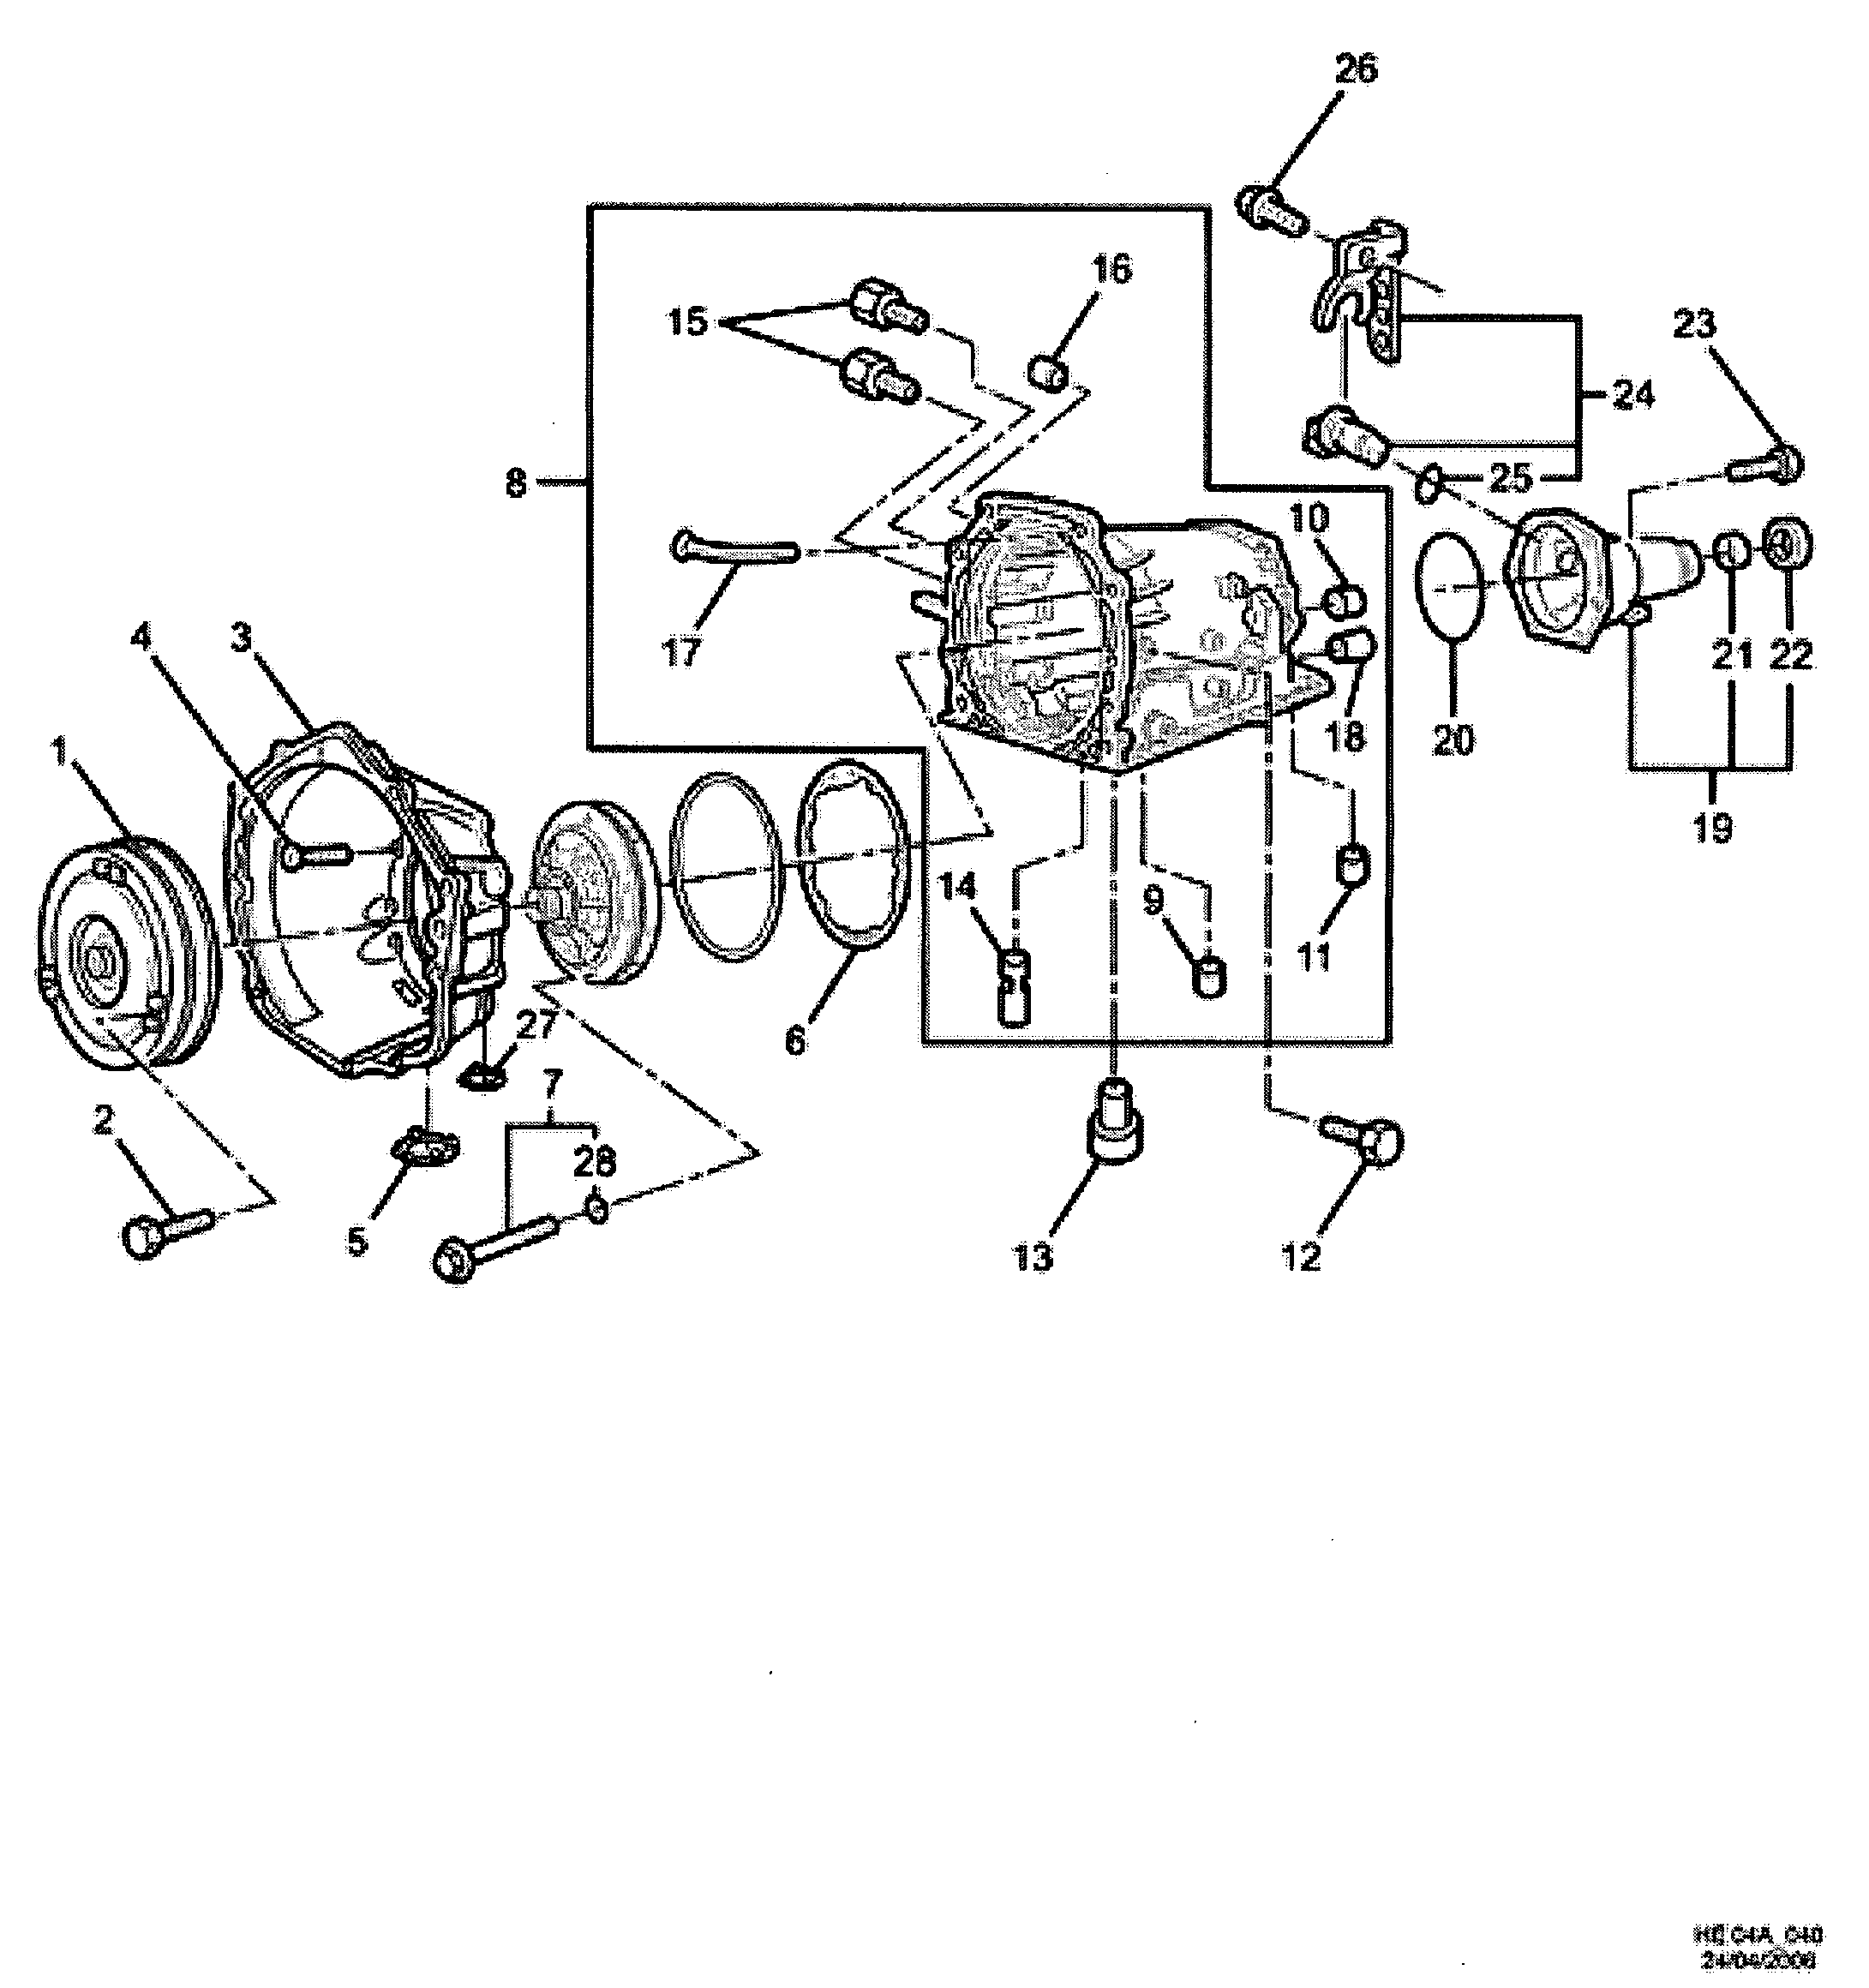 2007 2009 E Automatic Transmission Convertor Case Extensionm32 M30 Engine Diagram Extensionm32m30